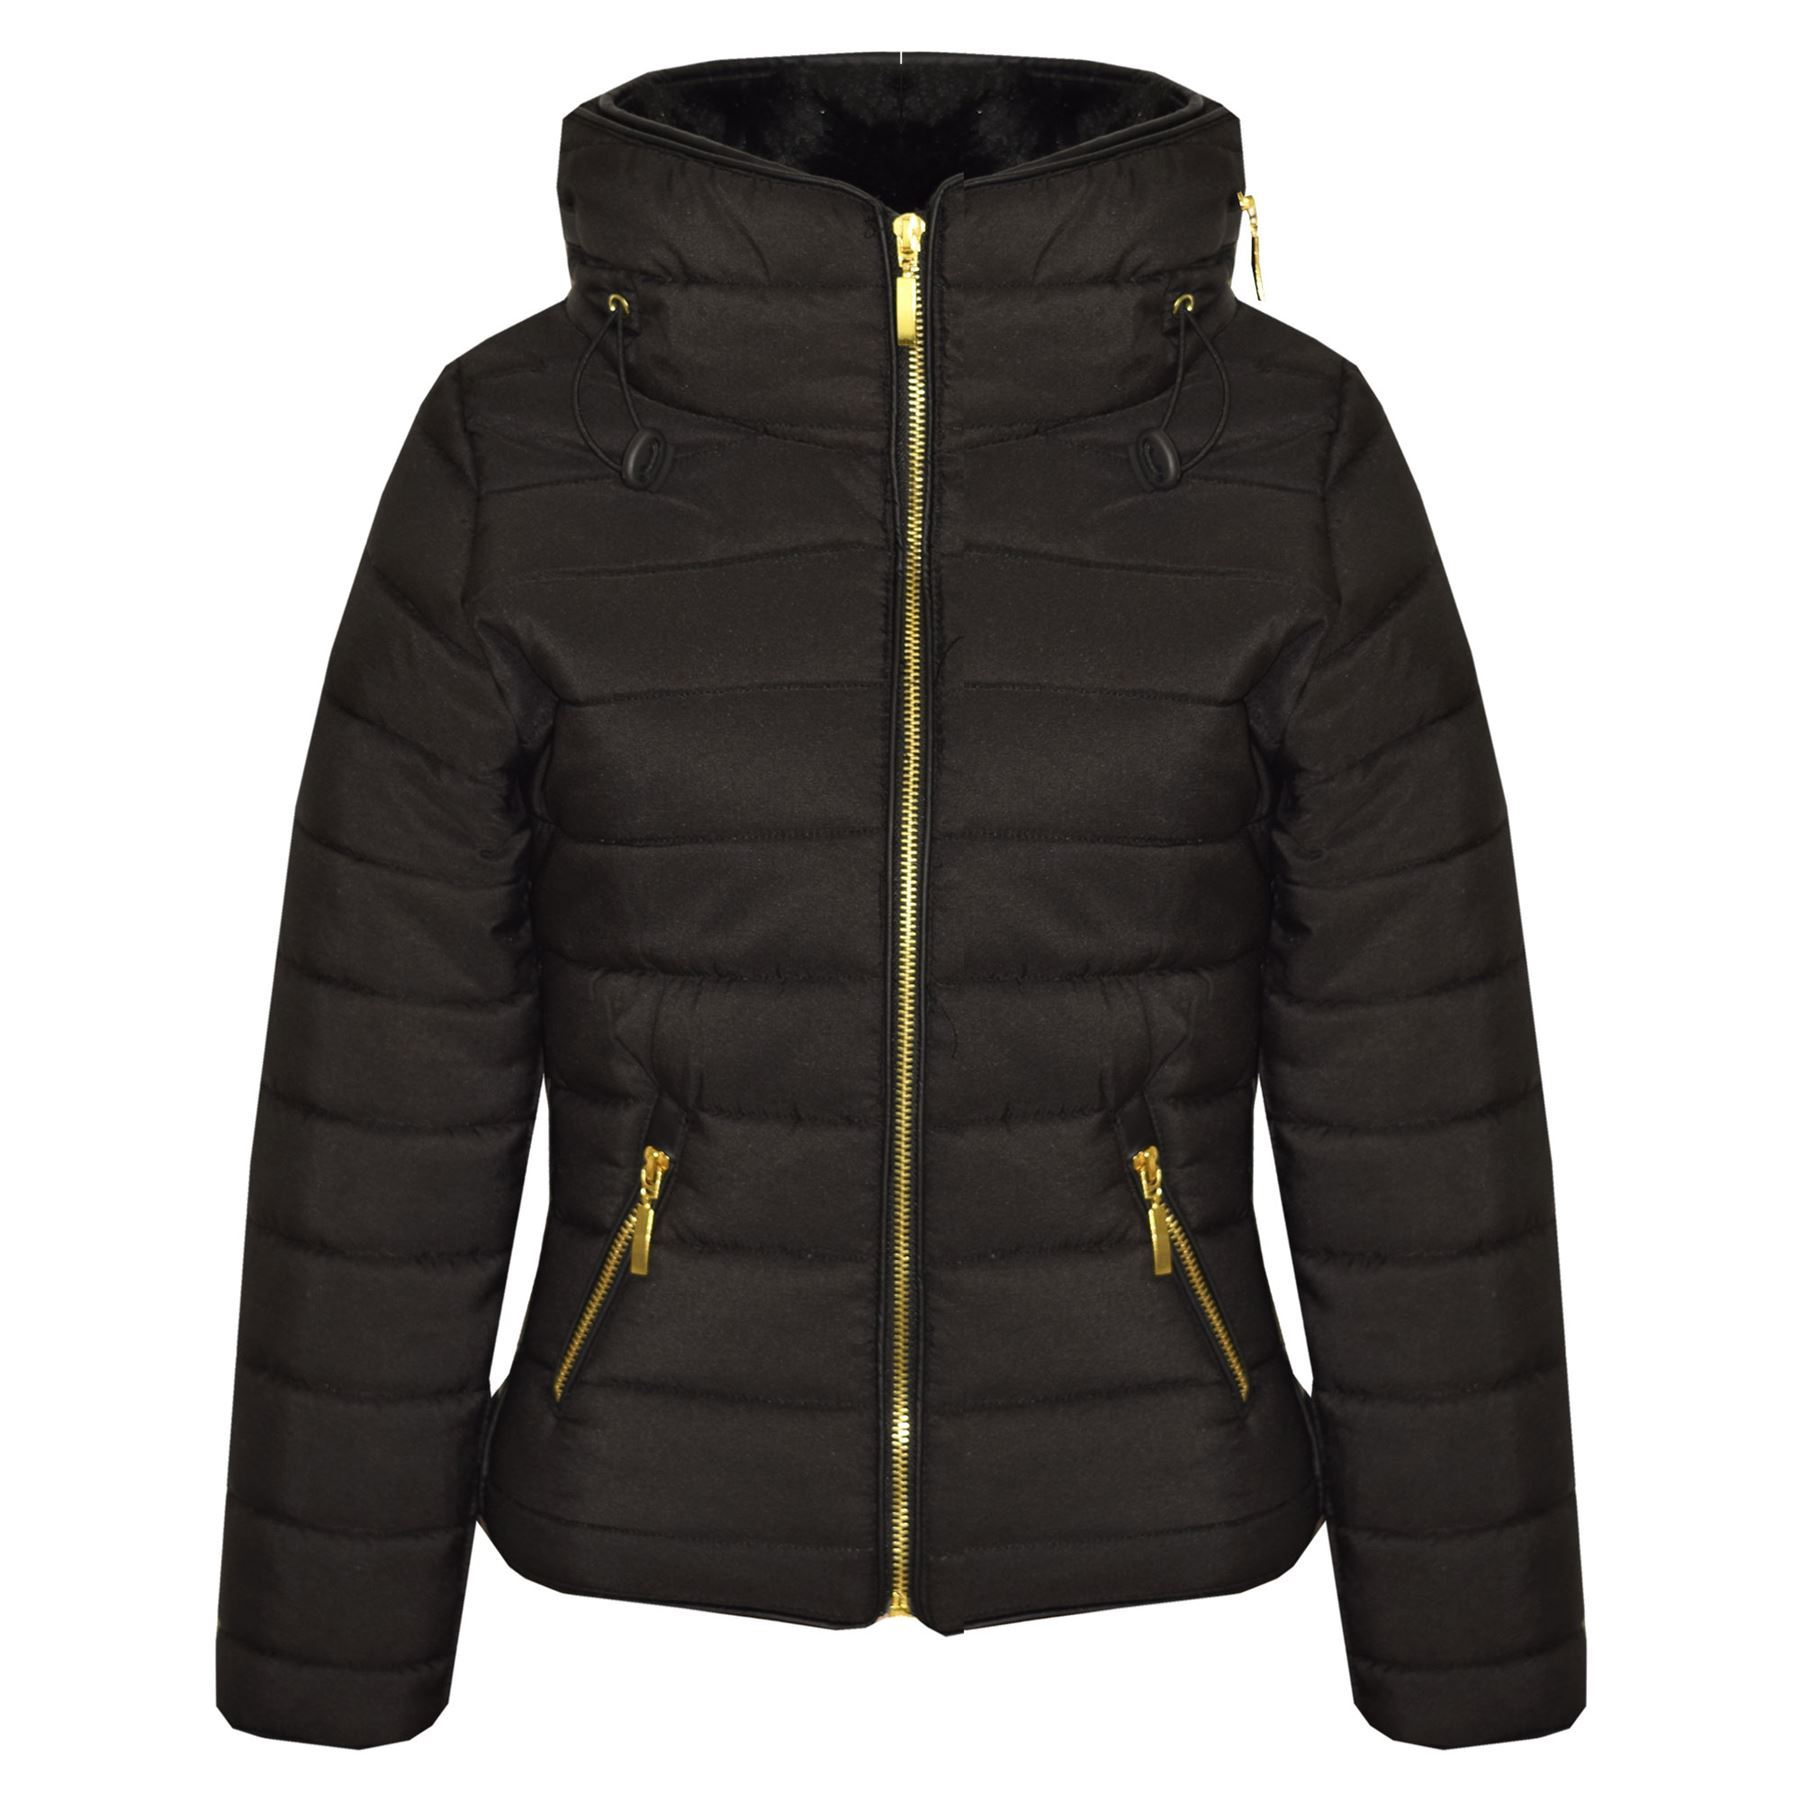 The Columbia Girls Benton Springs Fleece is a soft, cozy fleece zip-up jacket that offers instant insulation in a versatile, everyday style.